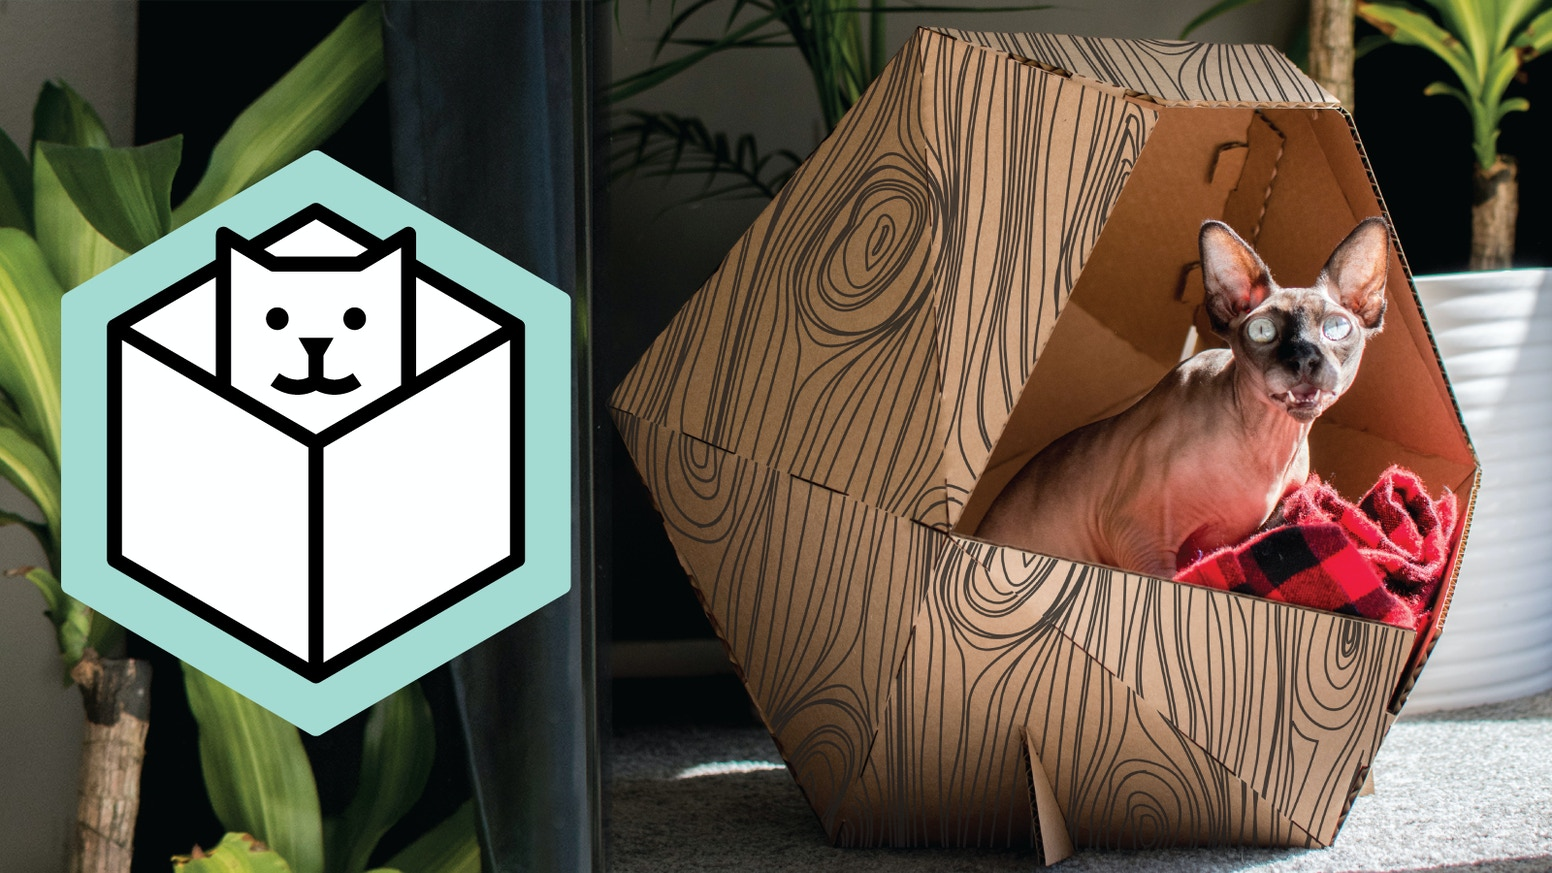 Unique DIY pop up pet homes made from recyclable materials for your furry friends. Give your cat or dog a space of their own!